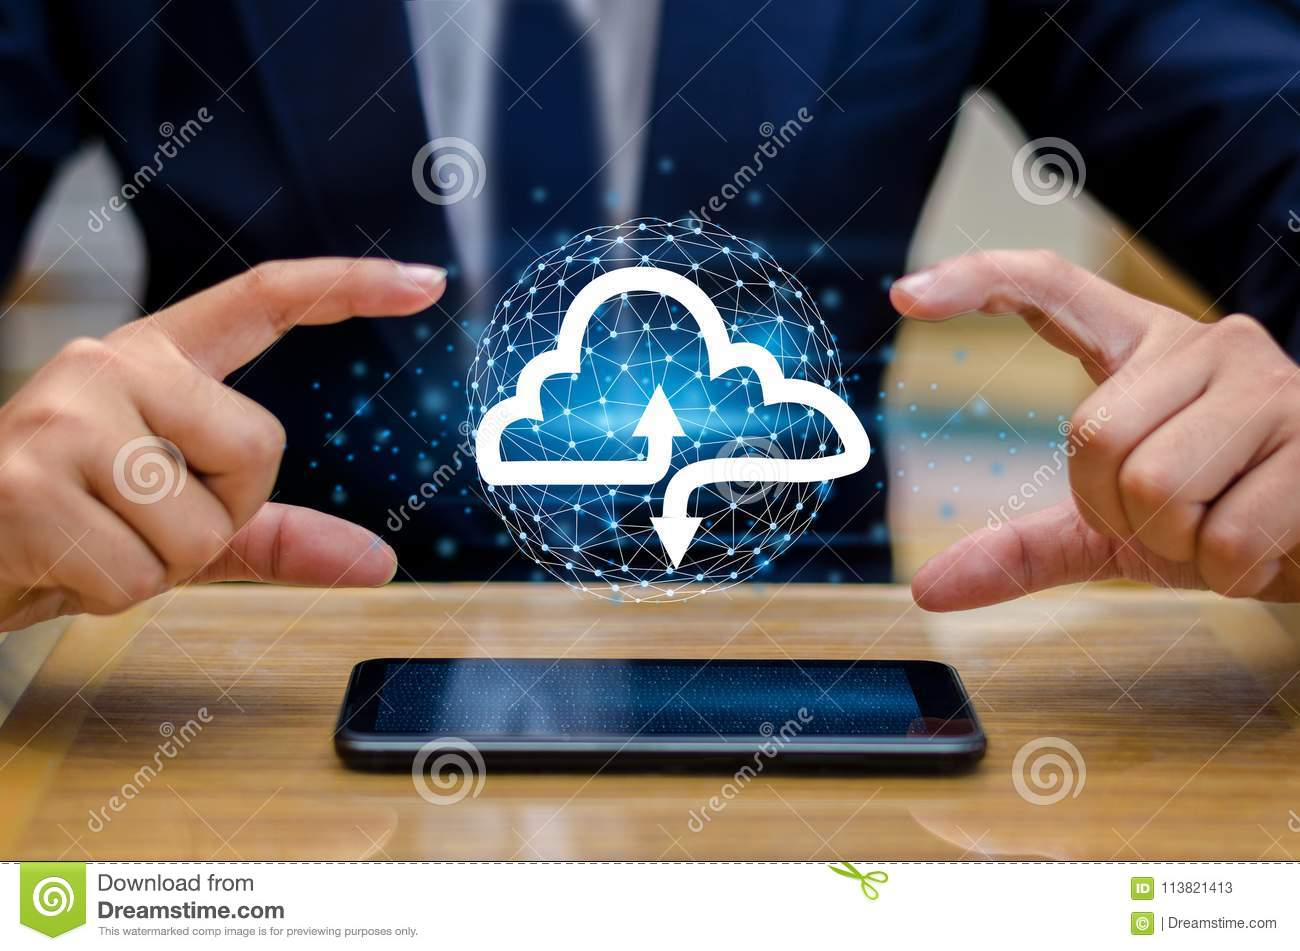 Hand print keyboard phone Press enter button on the computer hand businessman connect Cloud collect data Cloud computing concept